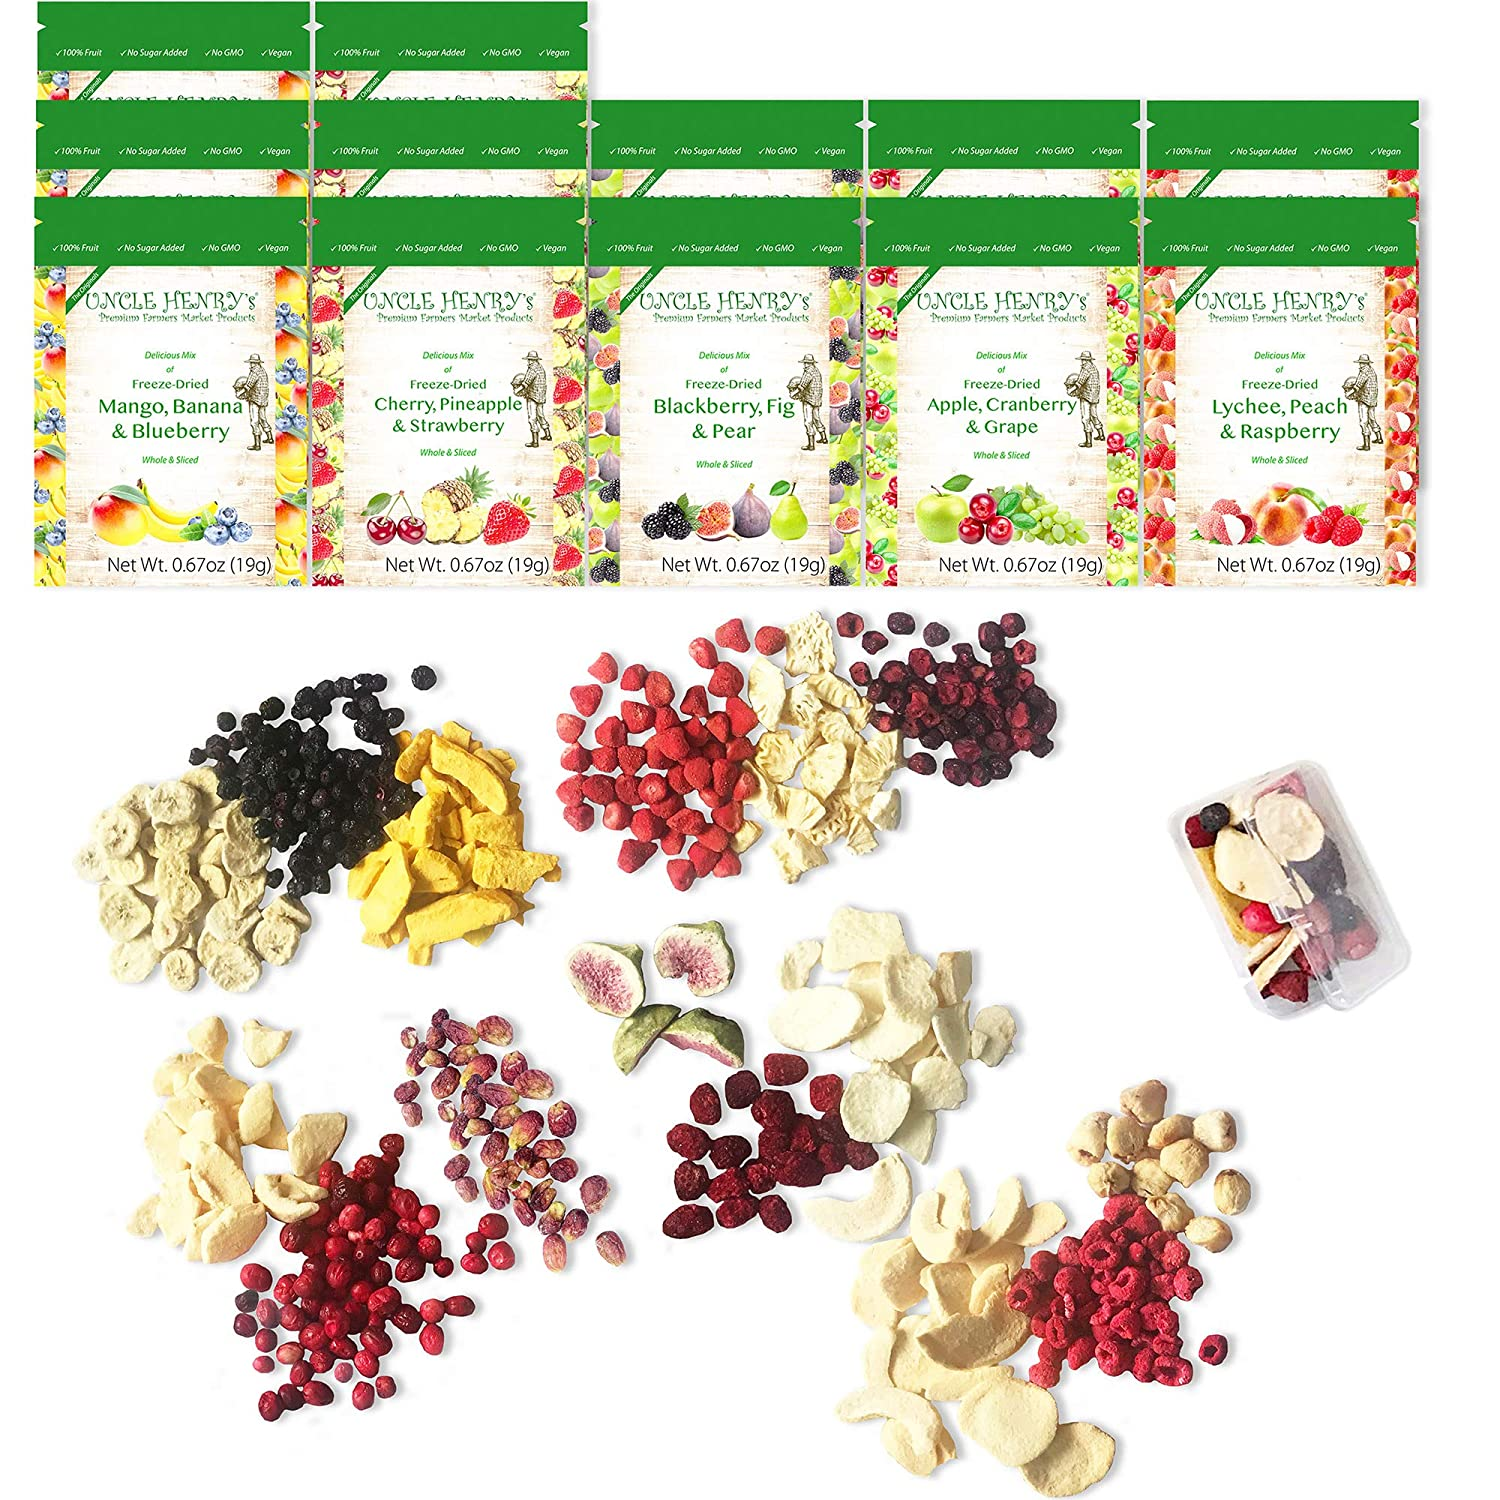 5 ☆ very popular Freeze Direct sale of manufacturer Dried Fruit: 15 Delicious Blueberry Strawberry Fruits R